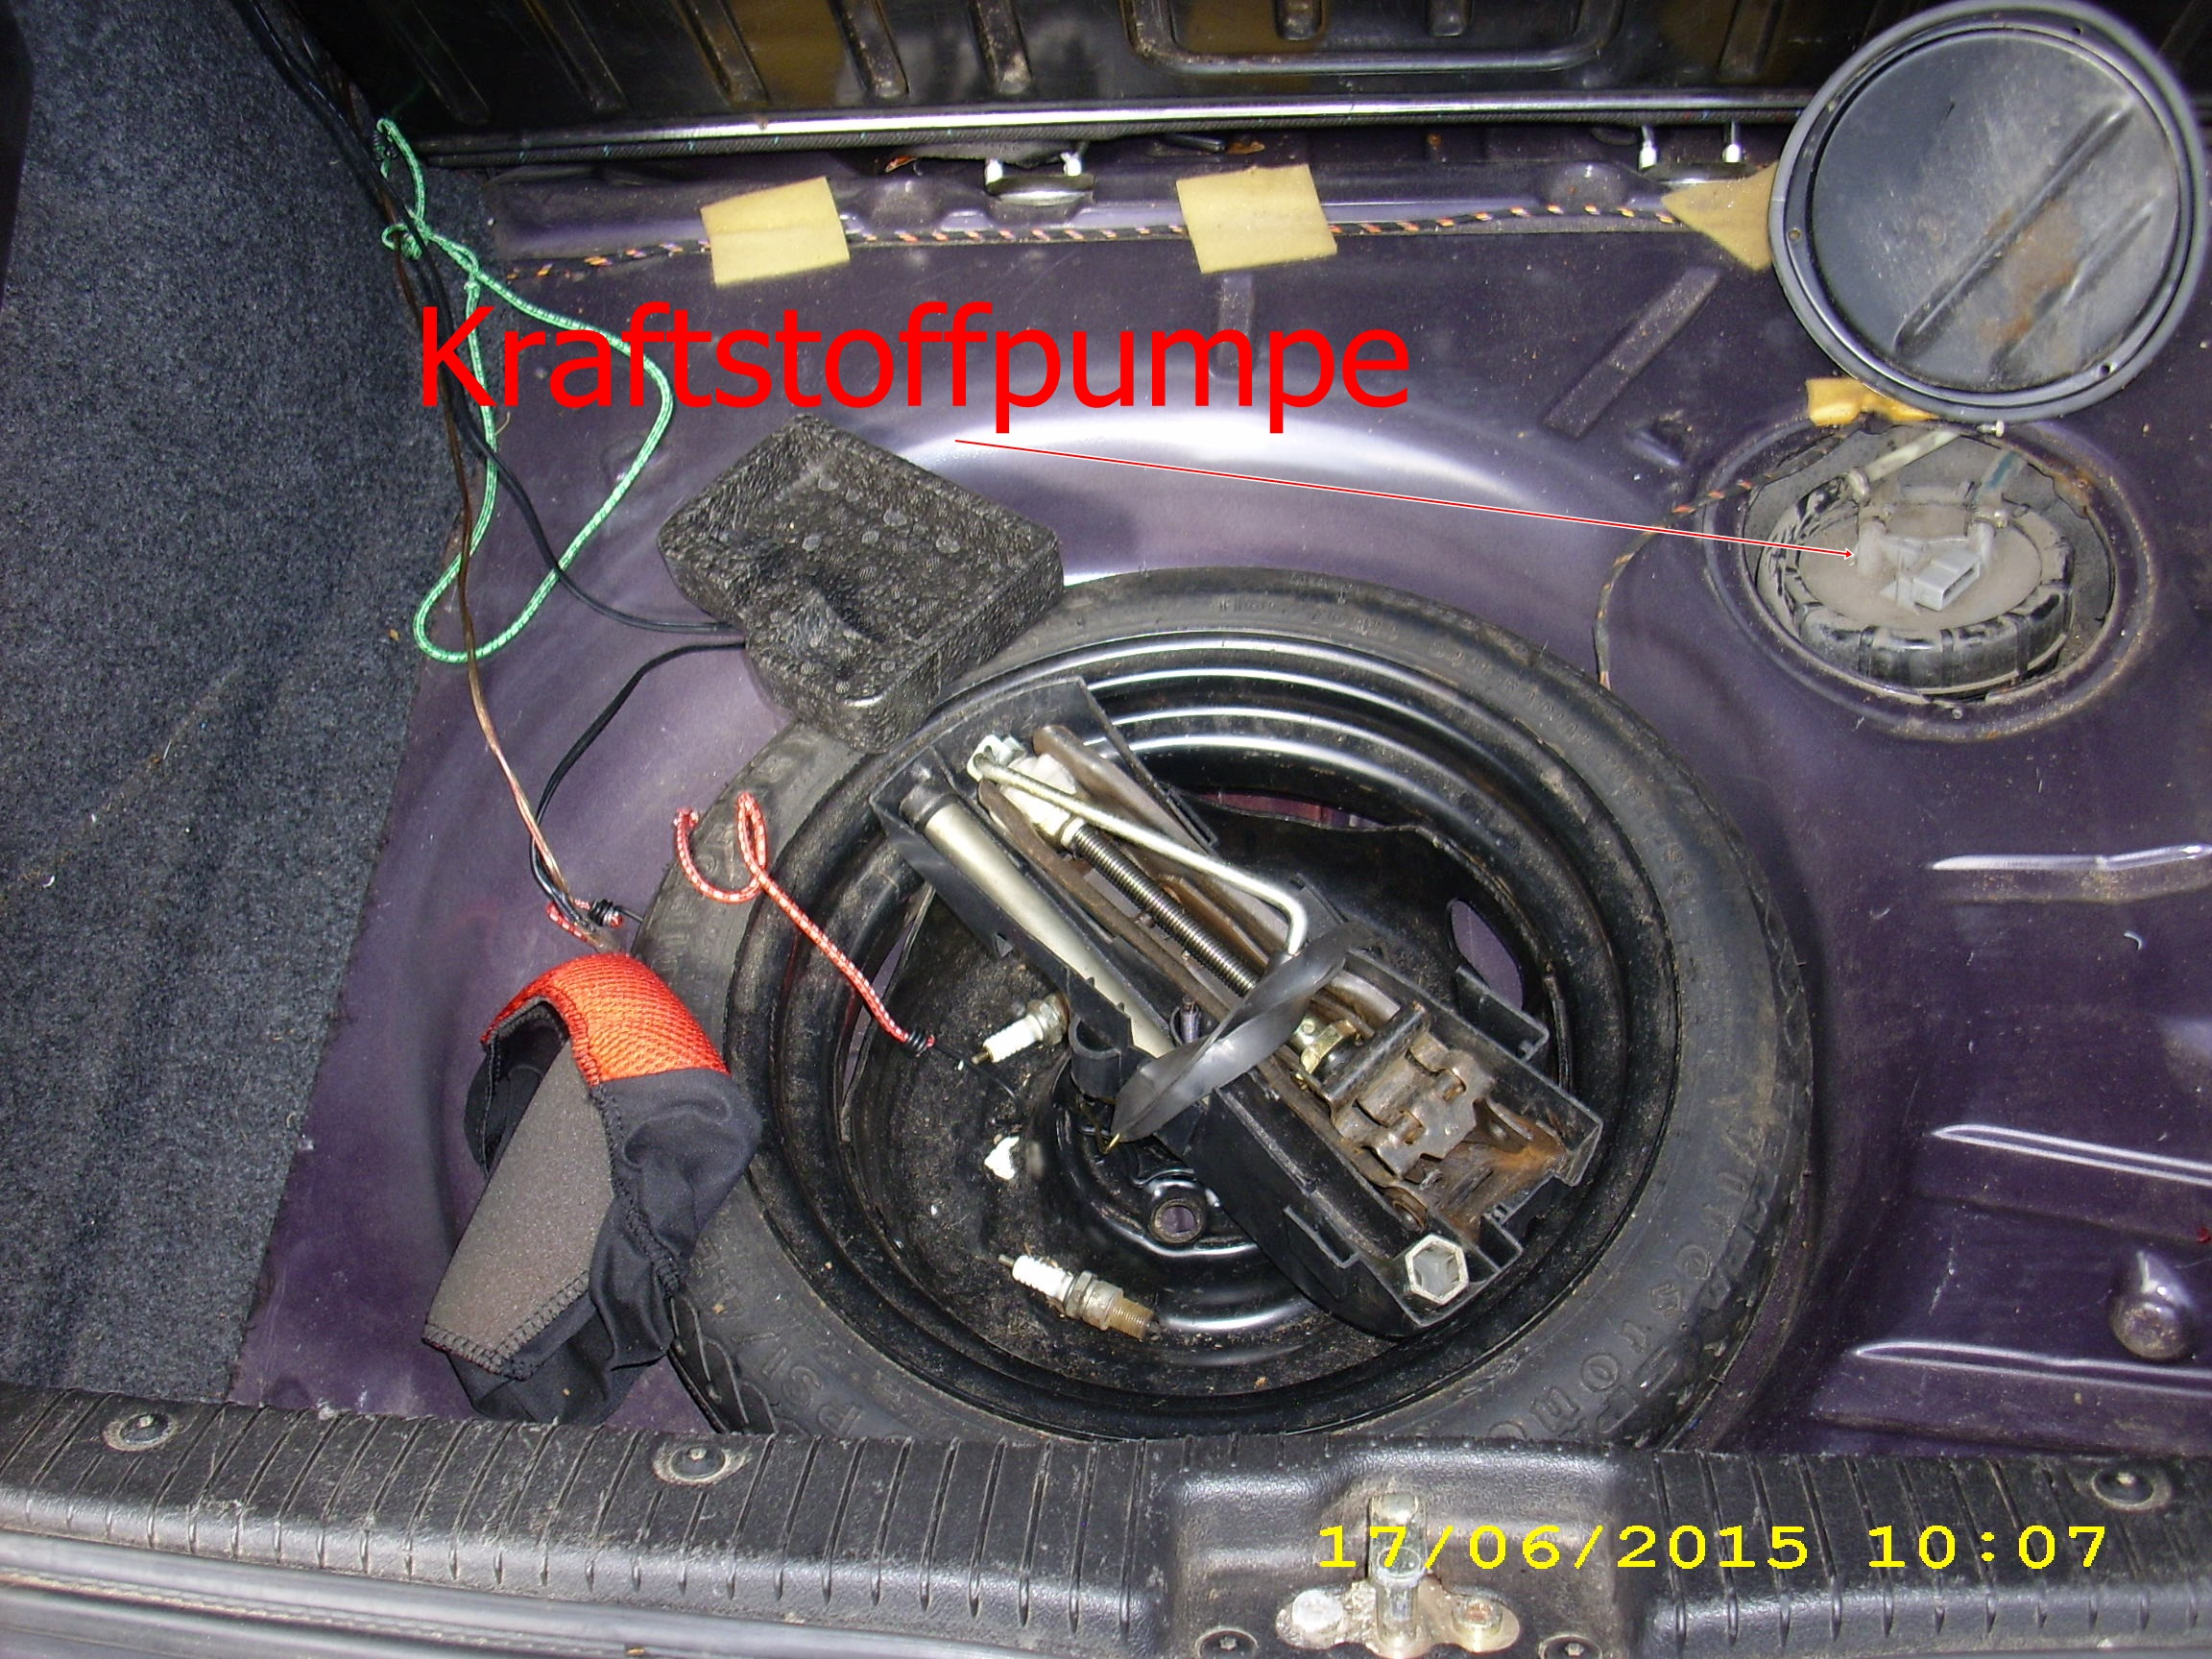 Volkswagen Golf III model 959 additionally 460049 TipTronic To Manual Transmission Swap additionally Watch together with 6037 1994 Toyota Pickup 2 additionally 2002 Audi A4 Fuel Pump Relay Location 17edea3f6f9fa916. on 1999 vw cabriolet